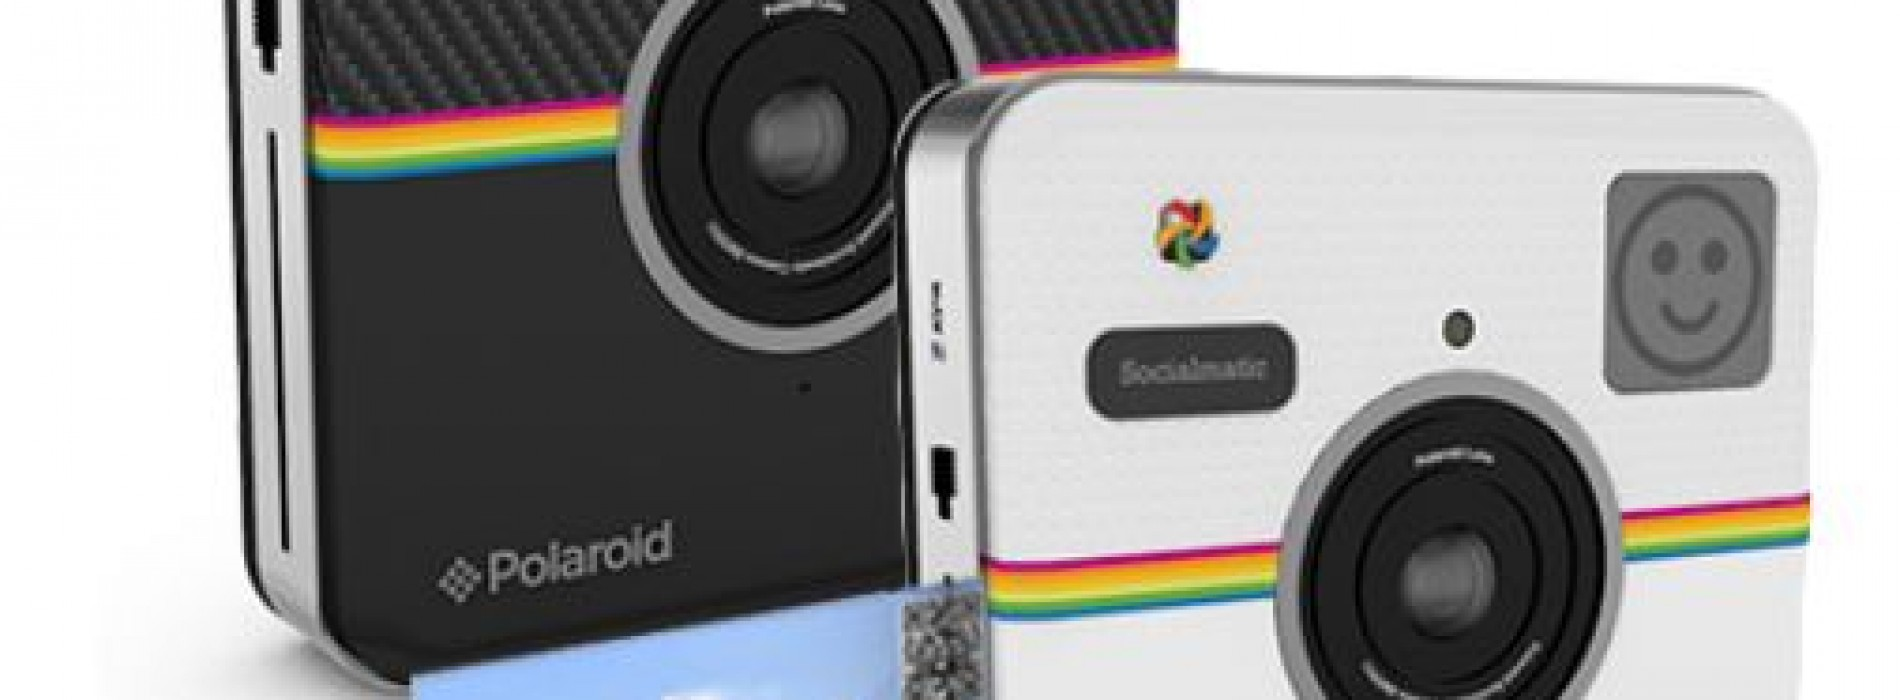 Polaroid Socialmatic due fall 2014